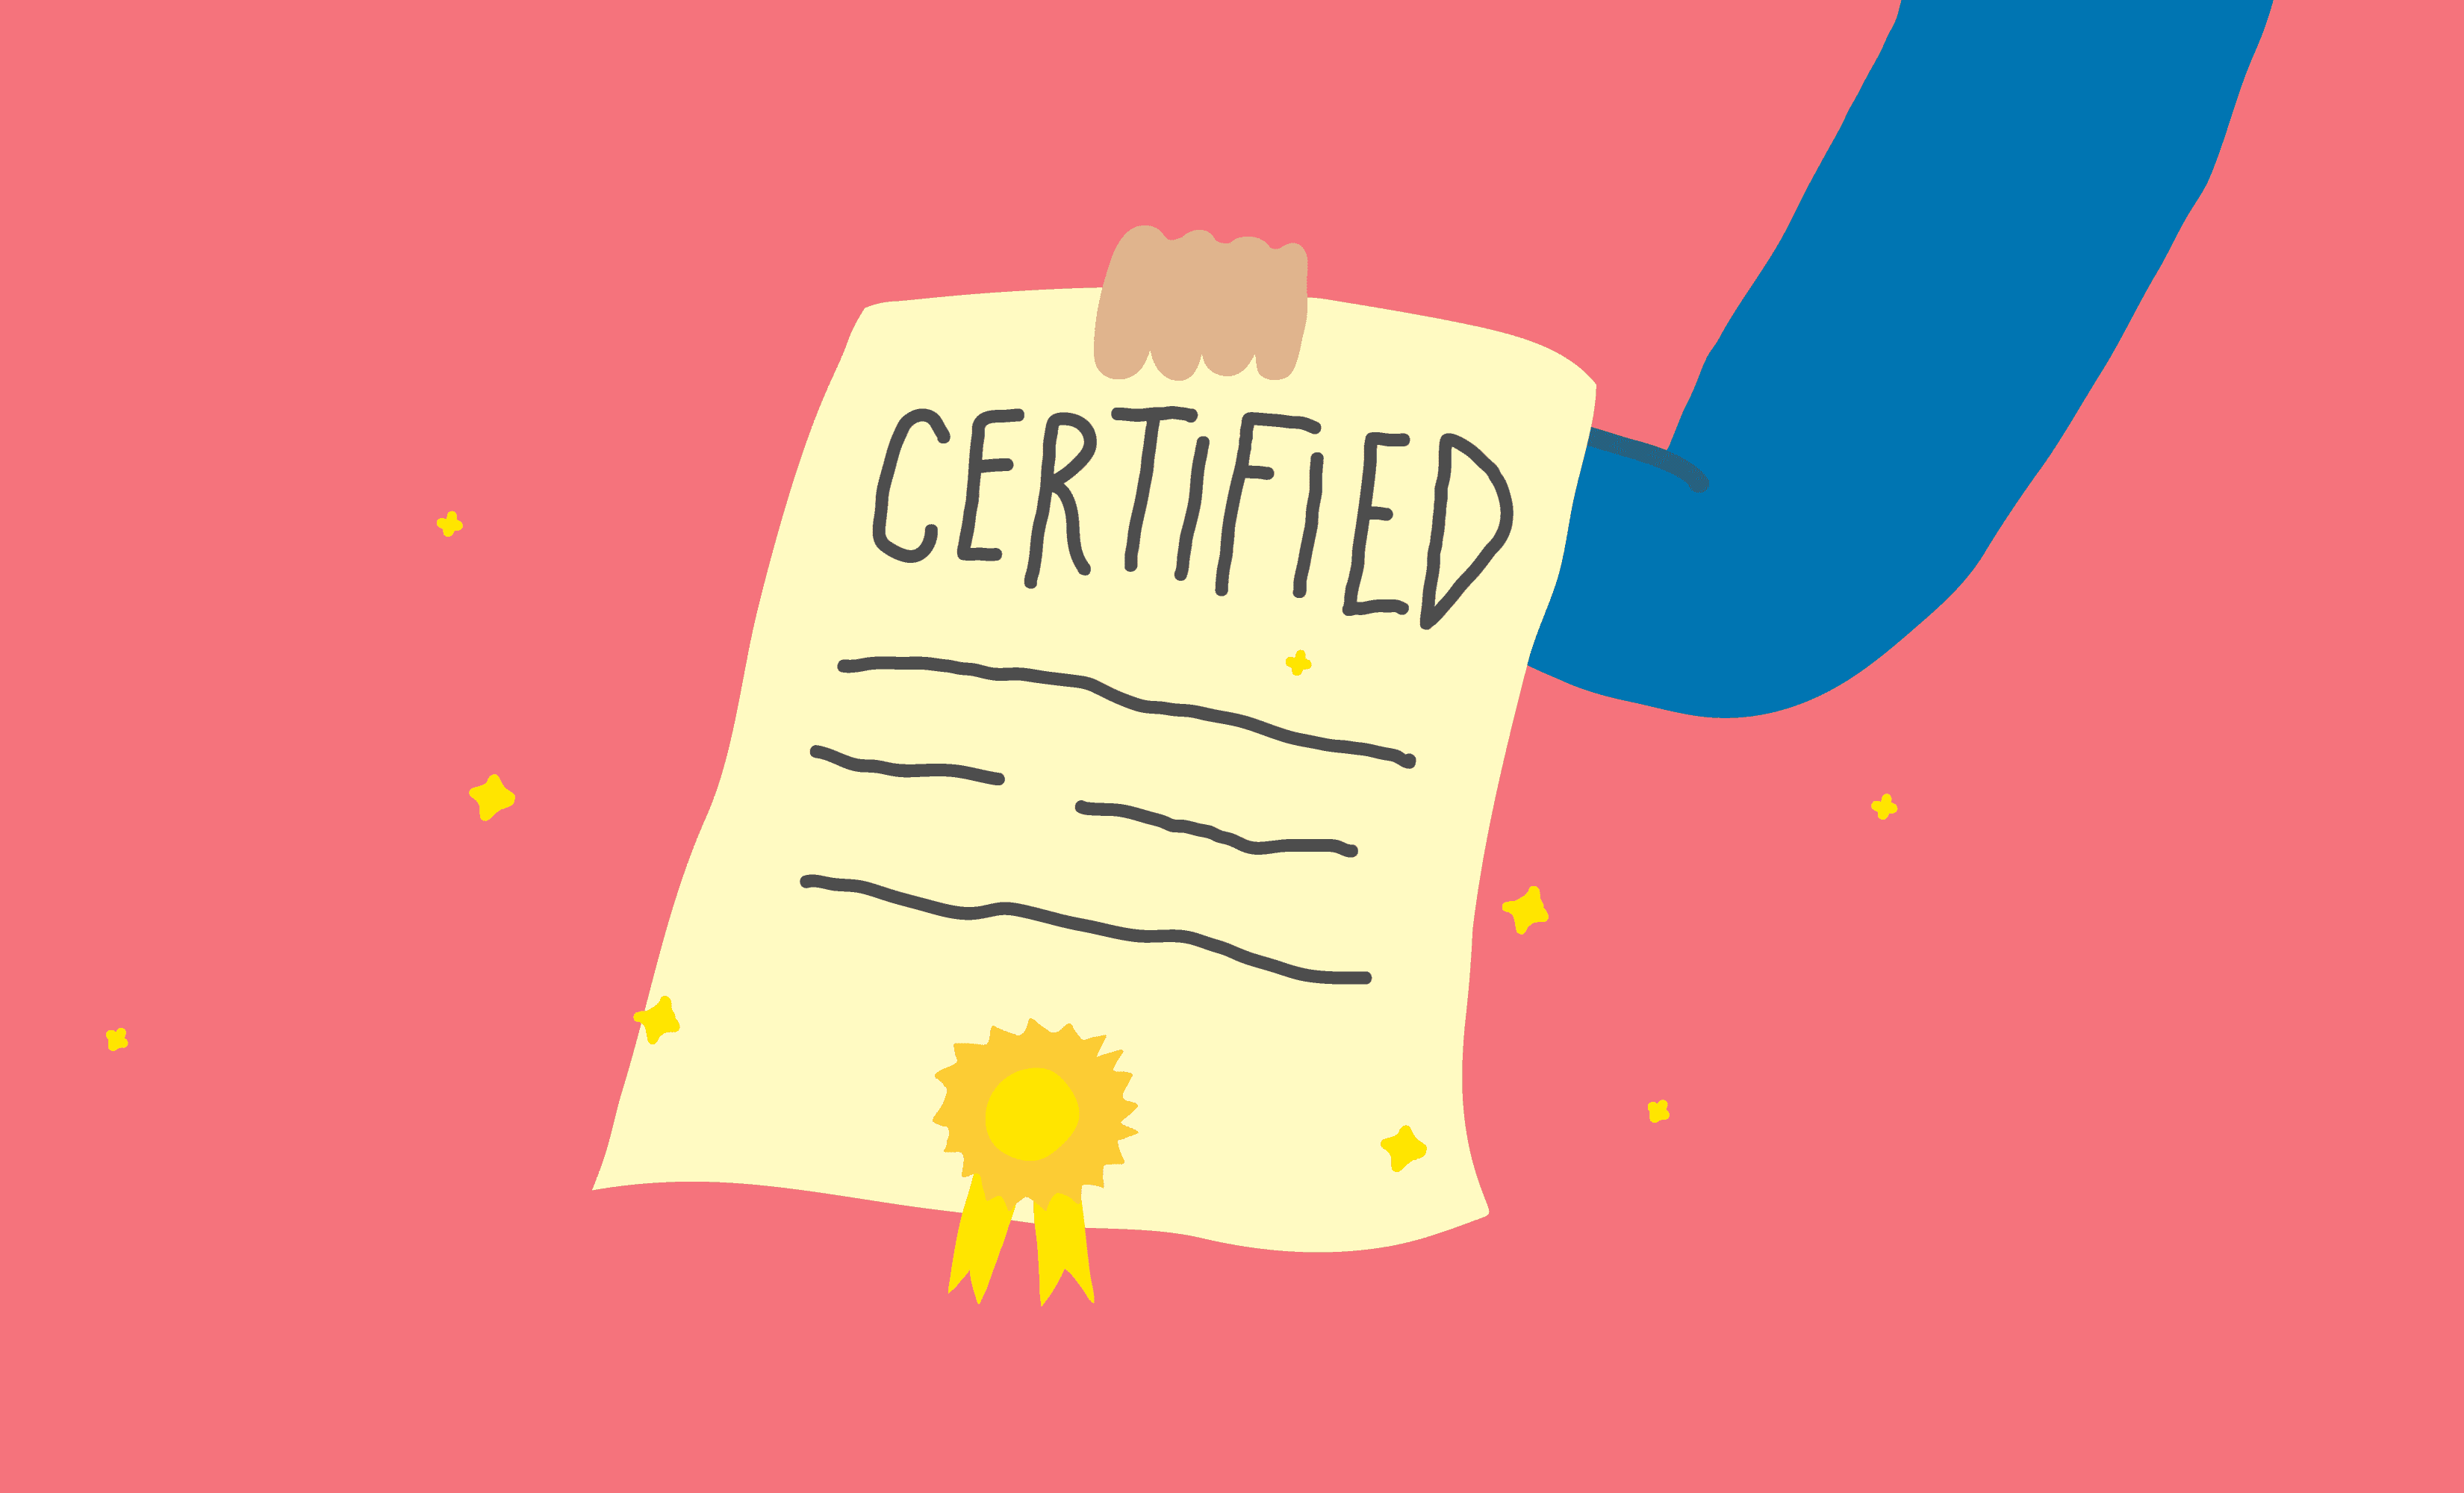 Do you know how to judge the safety and quality of baby products through certificates?